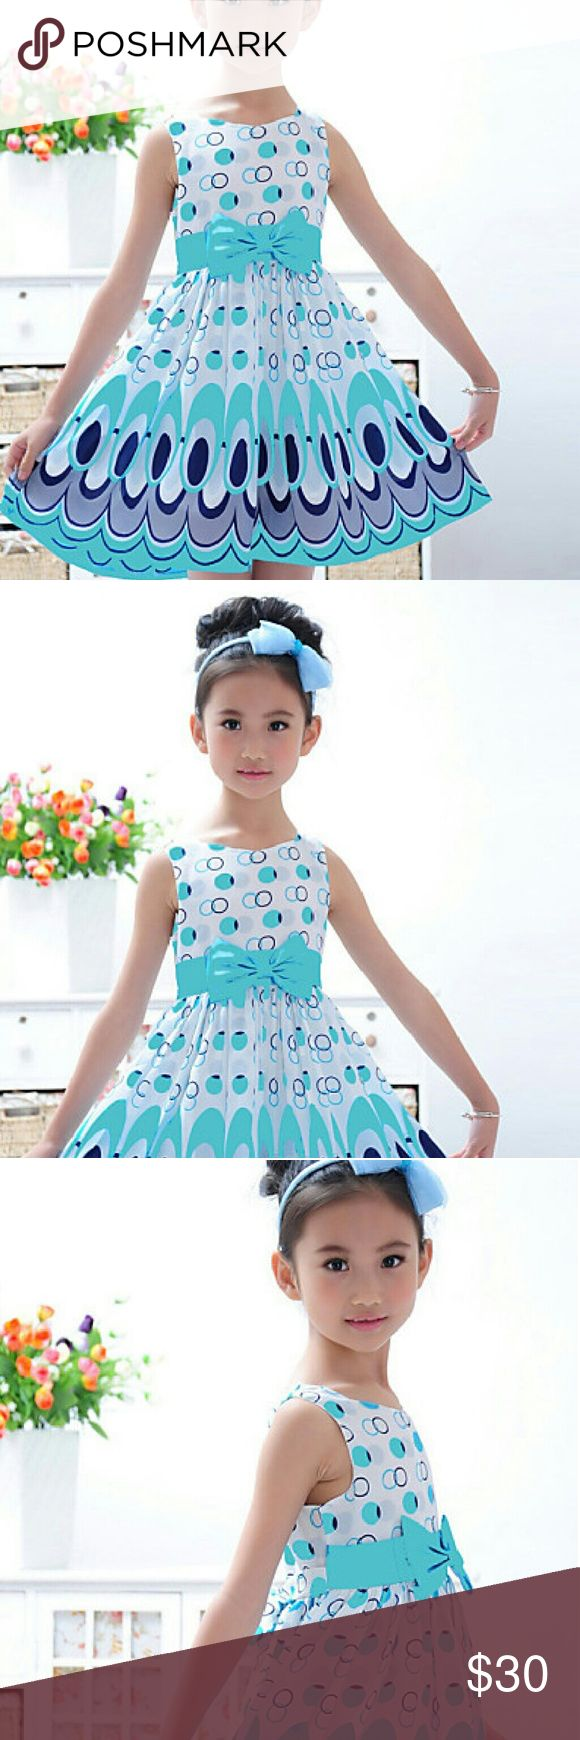 A Fabulous Girls Dress A very lovely dress for your Princess ;)!!  It has a lovely blue and white design with circles. It also has the cute bow in the front and straps on the back to tie it . This is a dress ready for any season and made out of cotton material and knee length.  With this cute dress, your Princess will certainly stand out with flair!! The Clothing lenght is 62cm, Shoulder width is 24cm and the Bust is 60cm. The size is 7T but honestly a 6yr old going on 7 could fit this ;)…